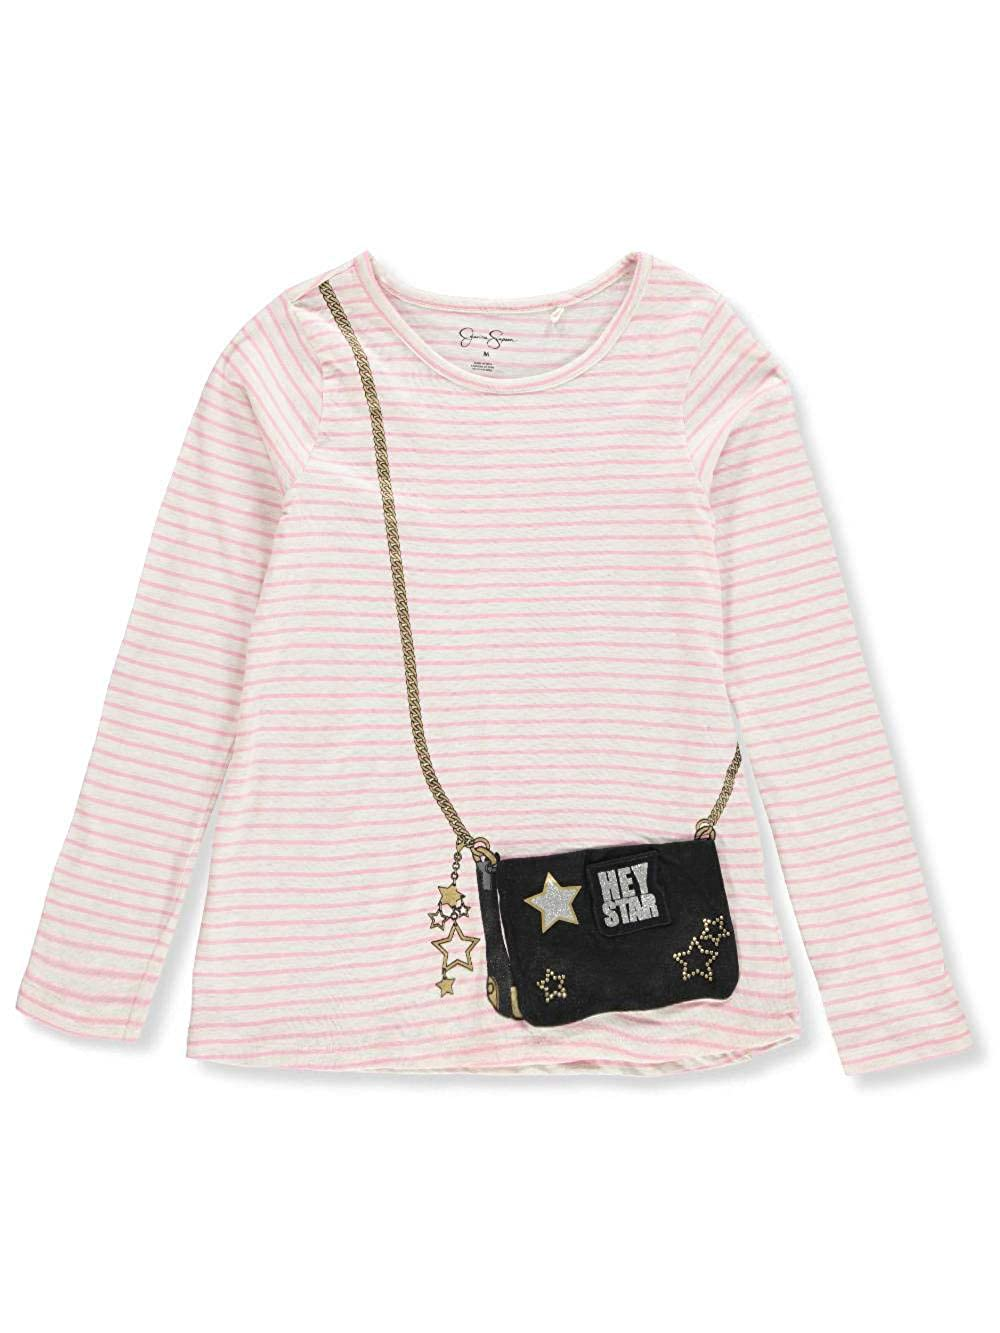 Jessica Simpson Girls' L/S Top